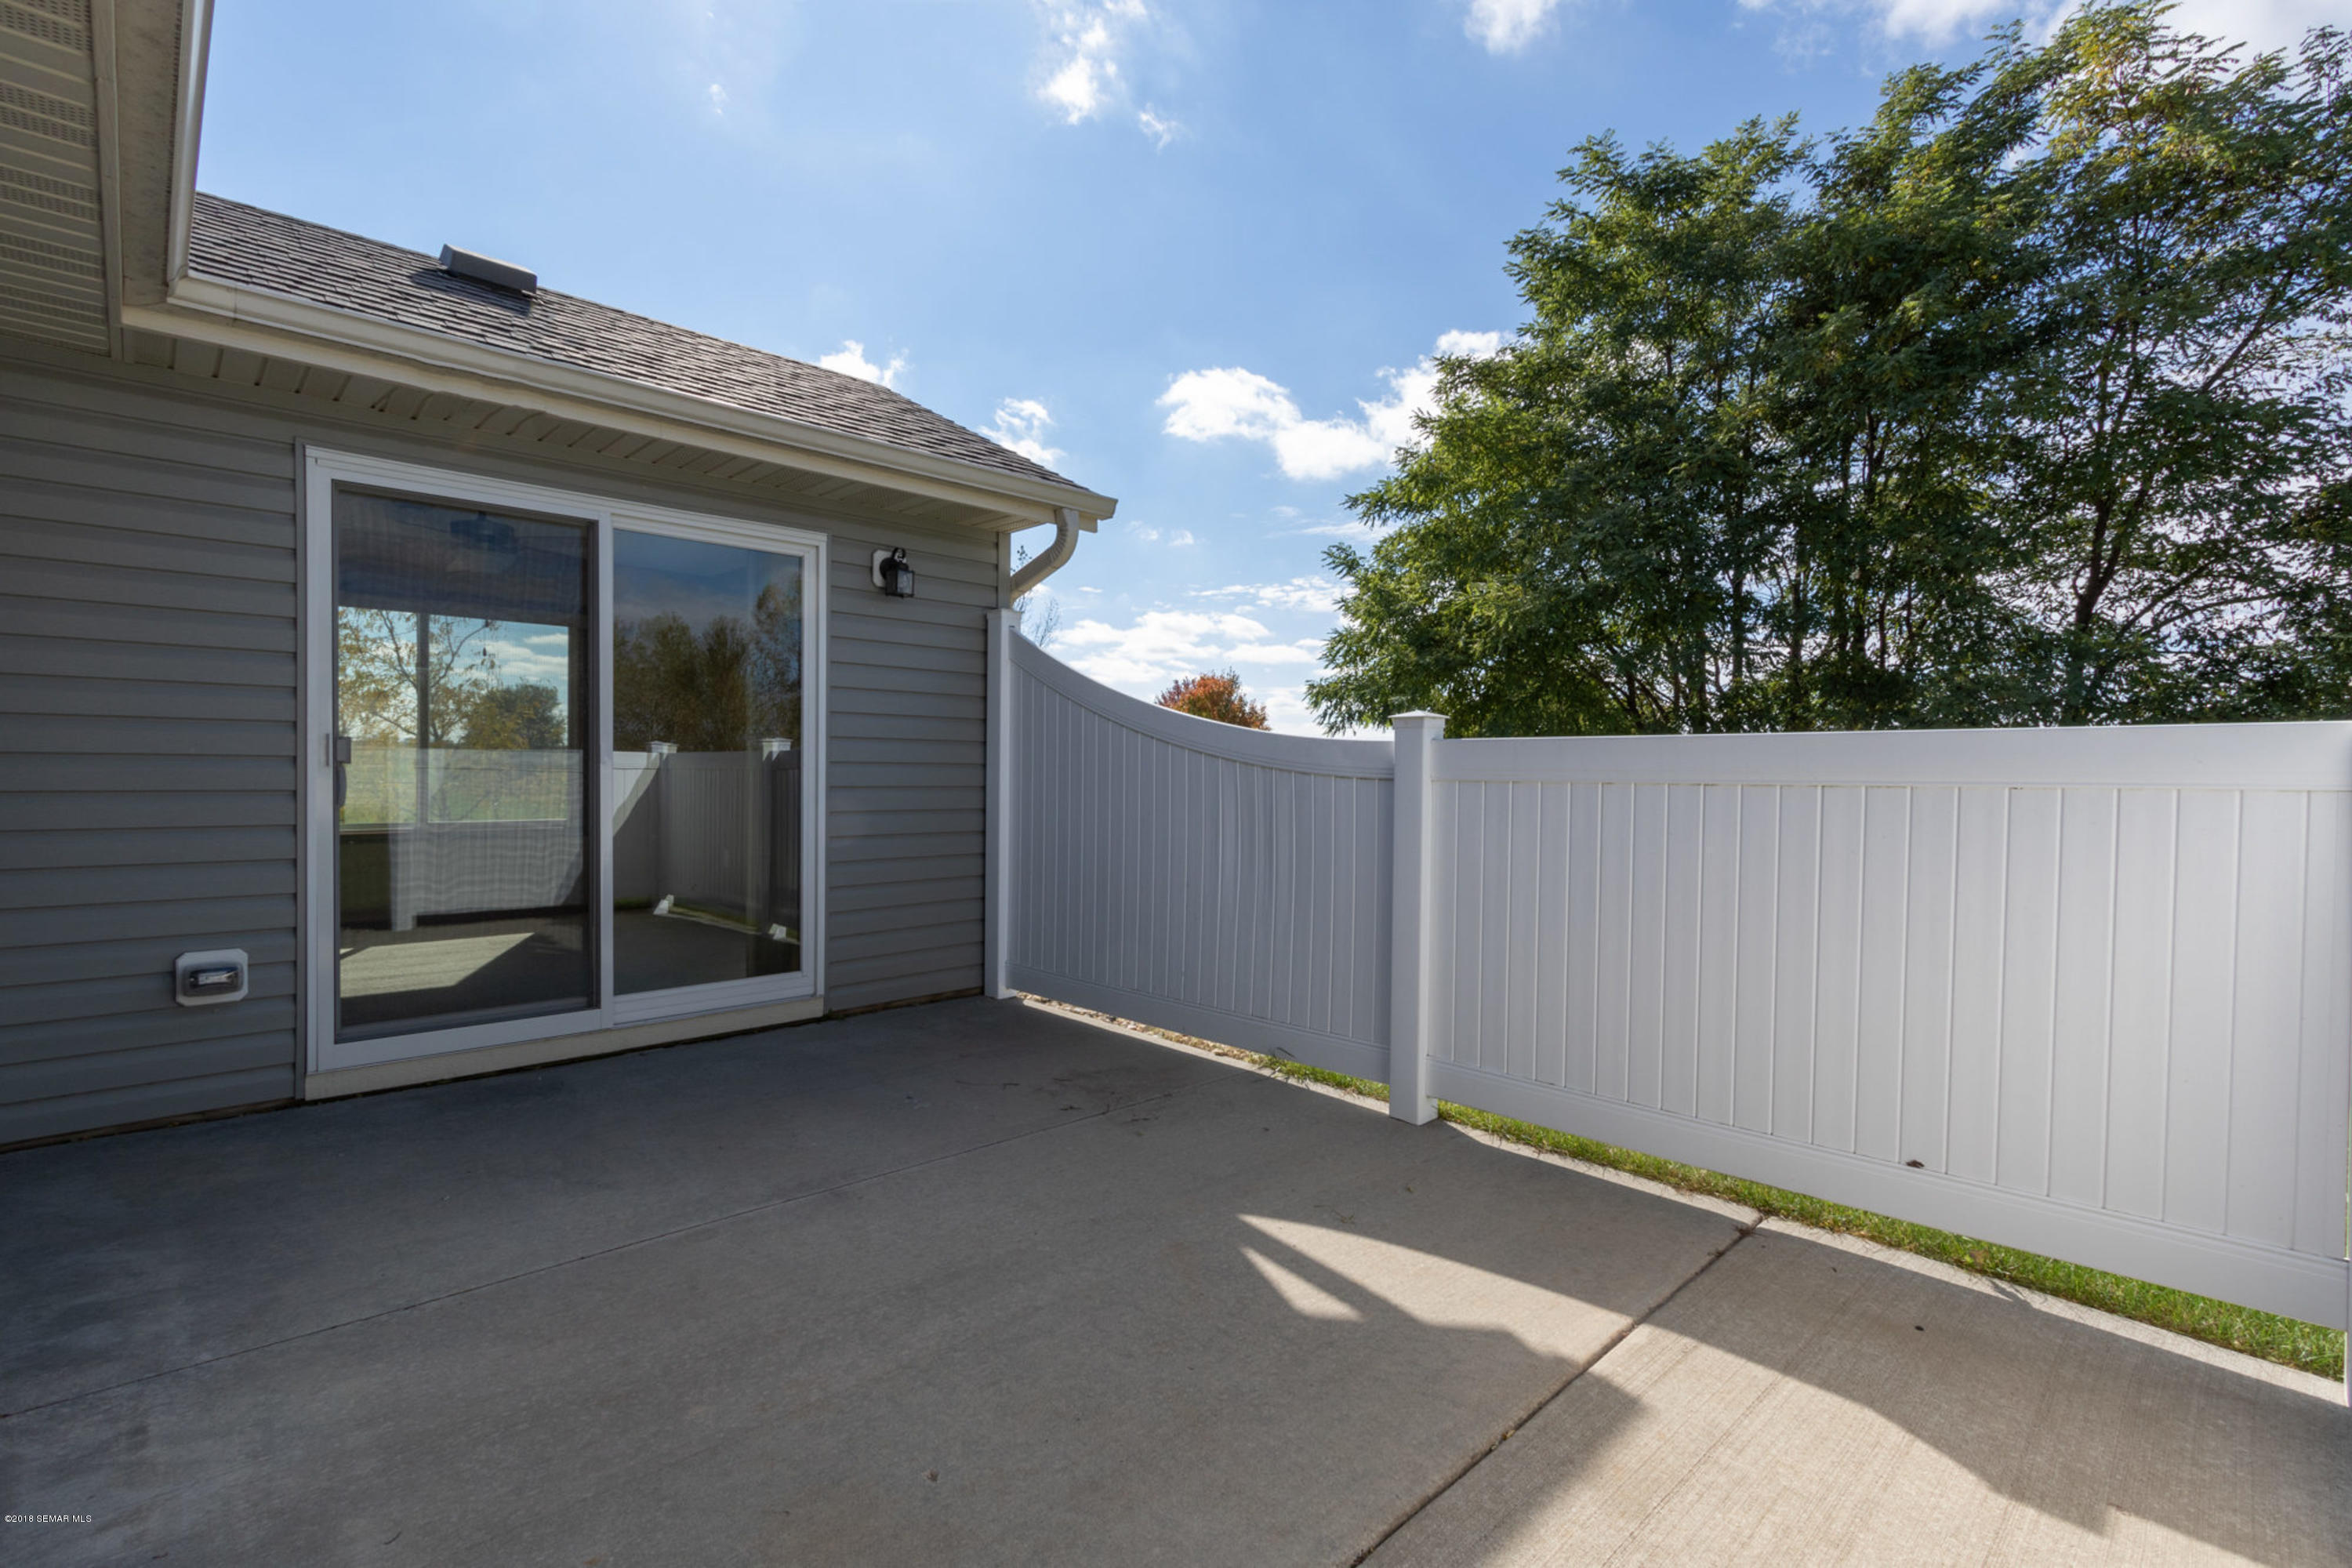 2528 Hawk Ridge,Rochester,Minnesota 55904,2 Bedrooms Bedrooms,2 BathroomsBathrooms,Townhouse,Hawk Ridge,4091937